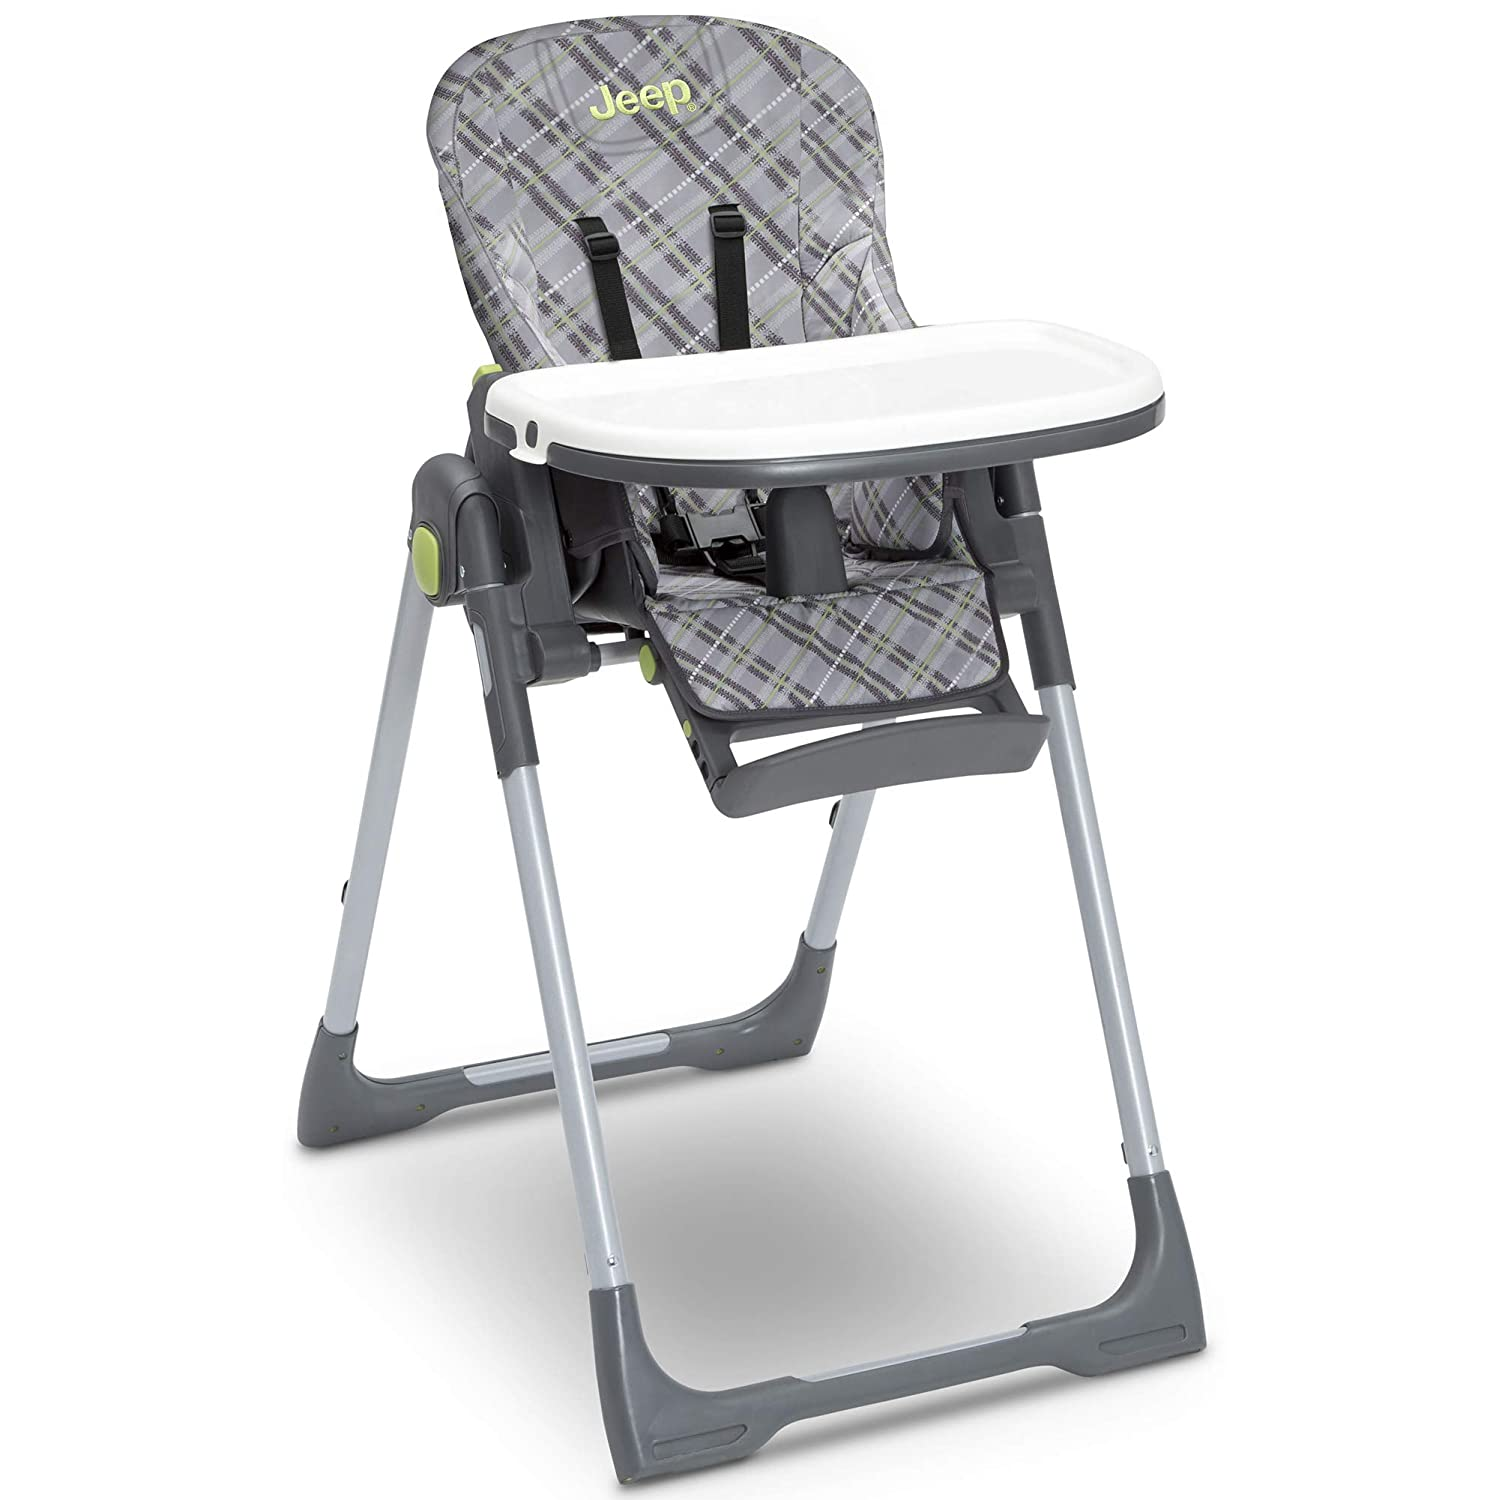 Baby Feeding Top-Quality Recliner Seat Foldable Toddler Infant High chair 2in1